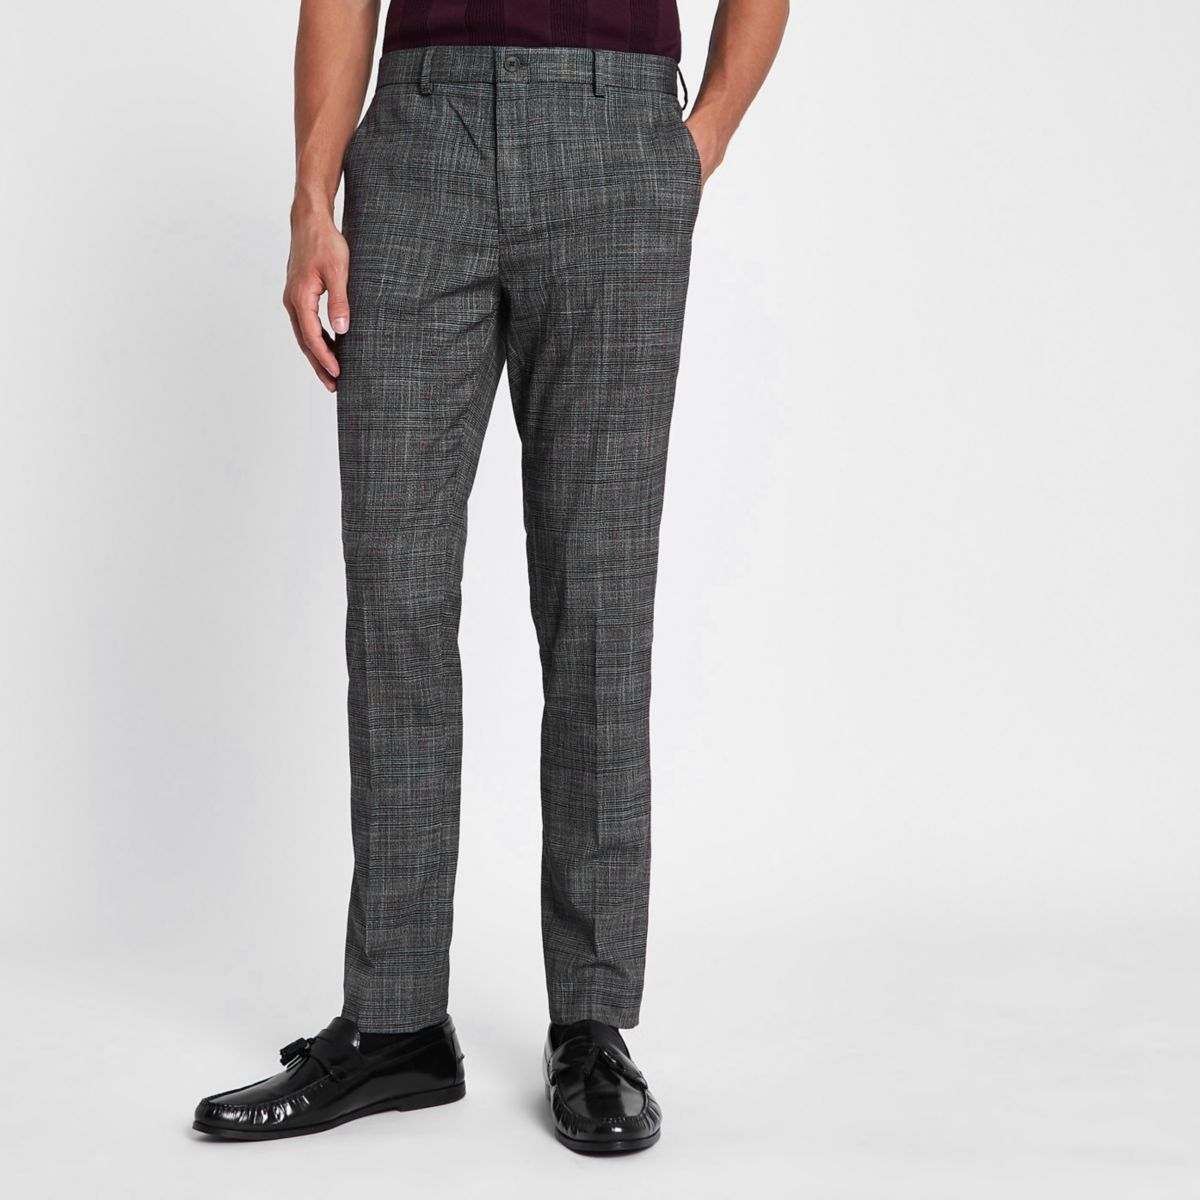 Discover men's trousers & chinos on sale at ASOS. Choose from the latest collection of trousers & chinos for men and shop your favourite items on sale. your browser is not supported. To use ASOS, we recommend using the latest versions of Chrome, Firefox, Safari or Internet Explorer.